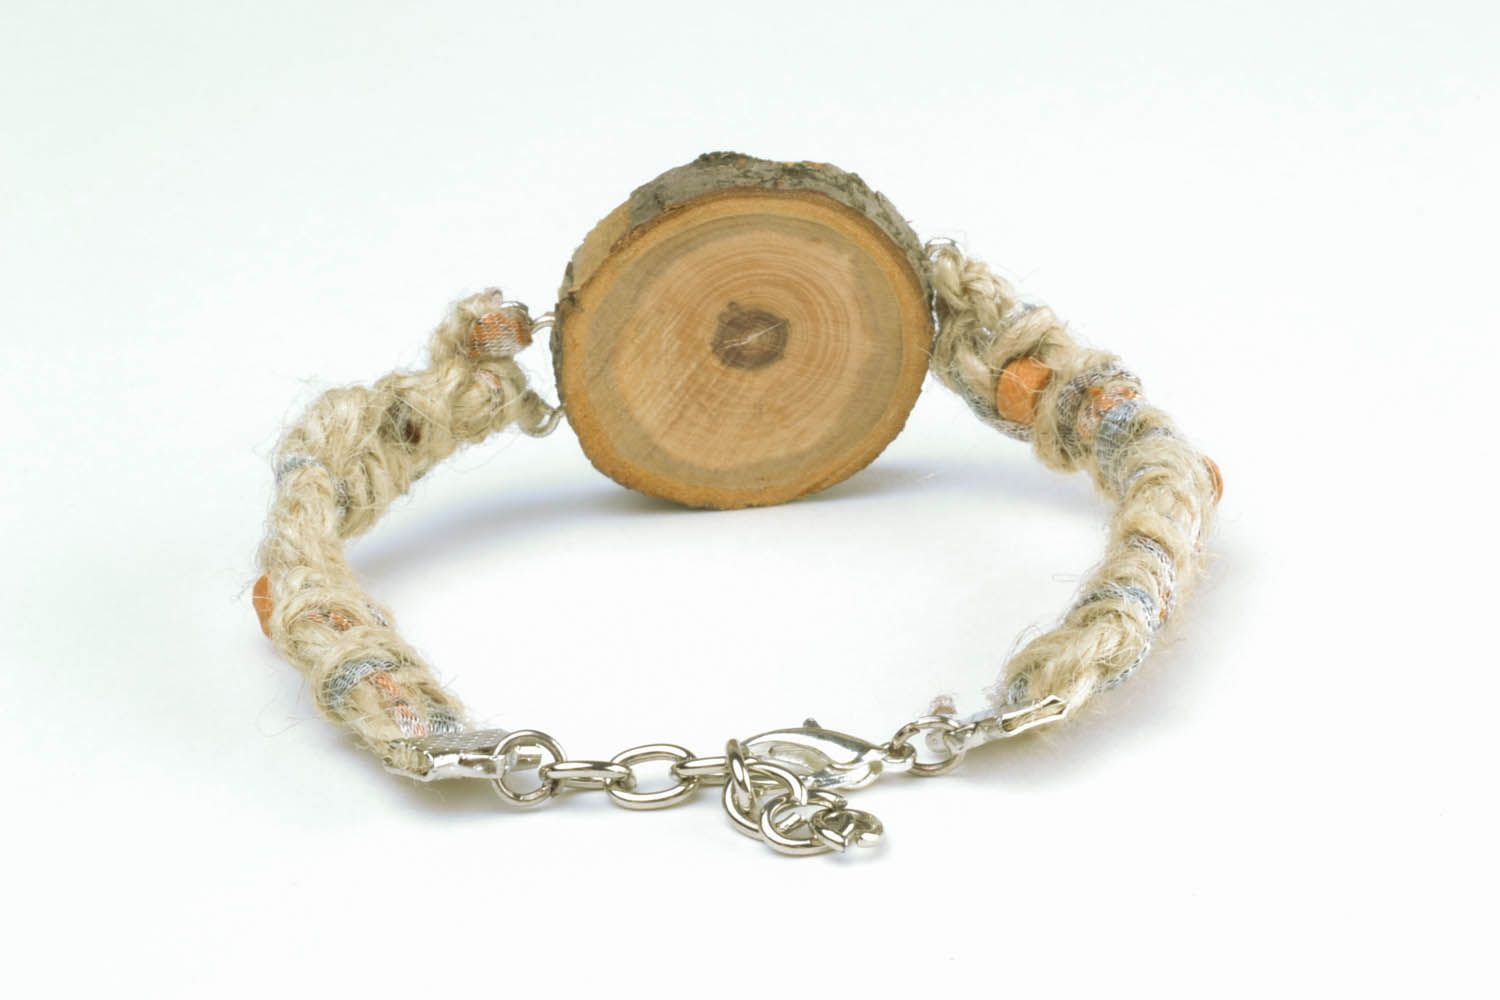 Bracelet made of threads photo 5